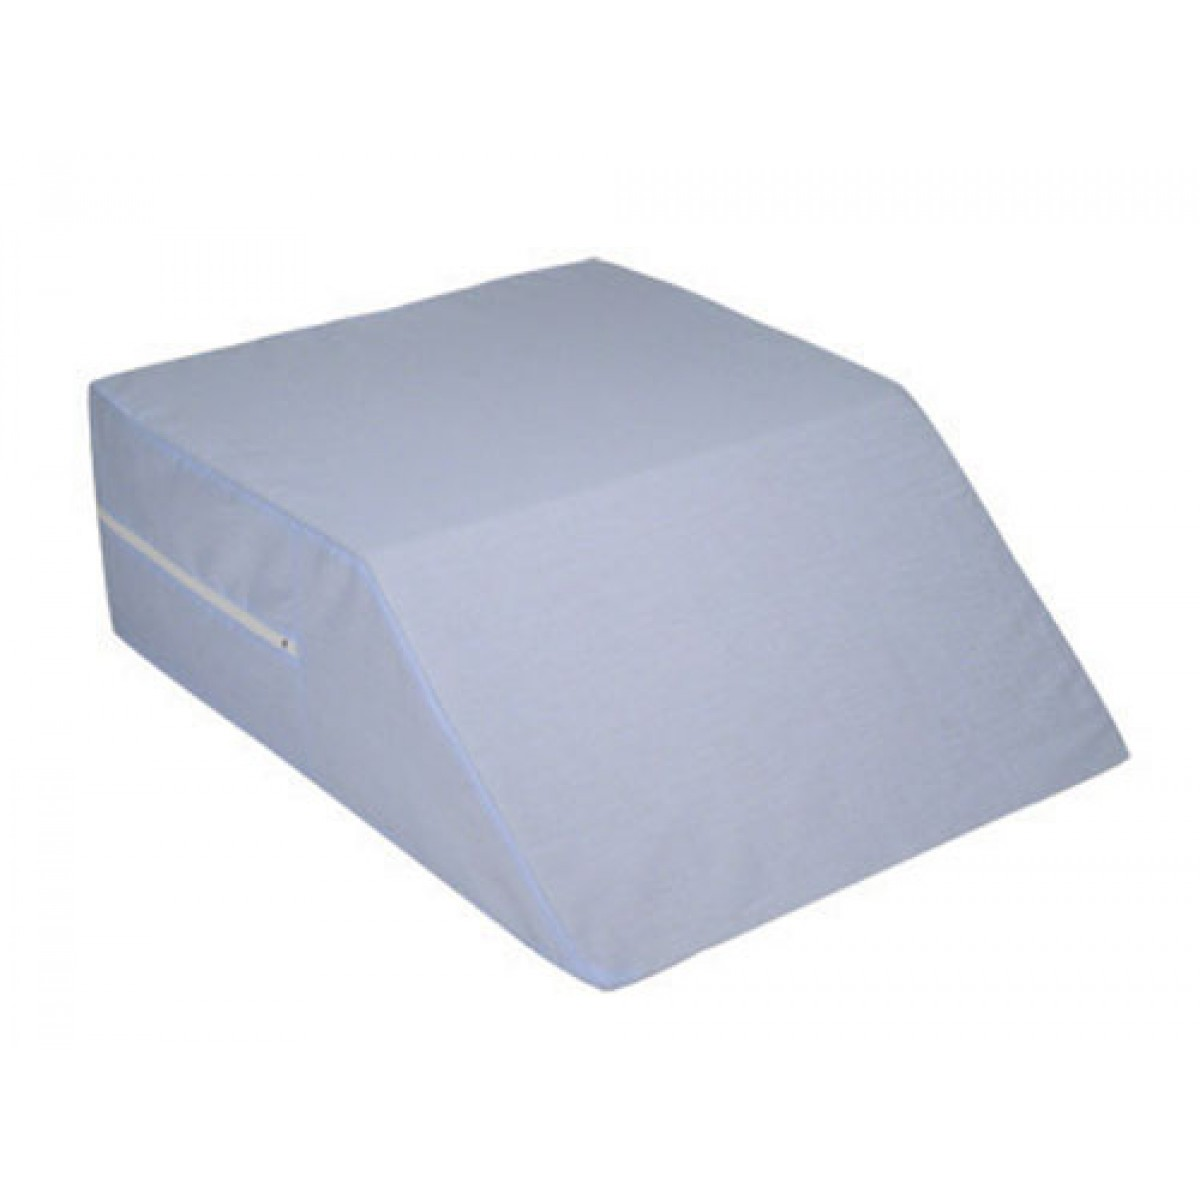 Ortho Bed Wedge On Sale With Unbeatable Prices